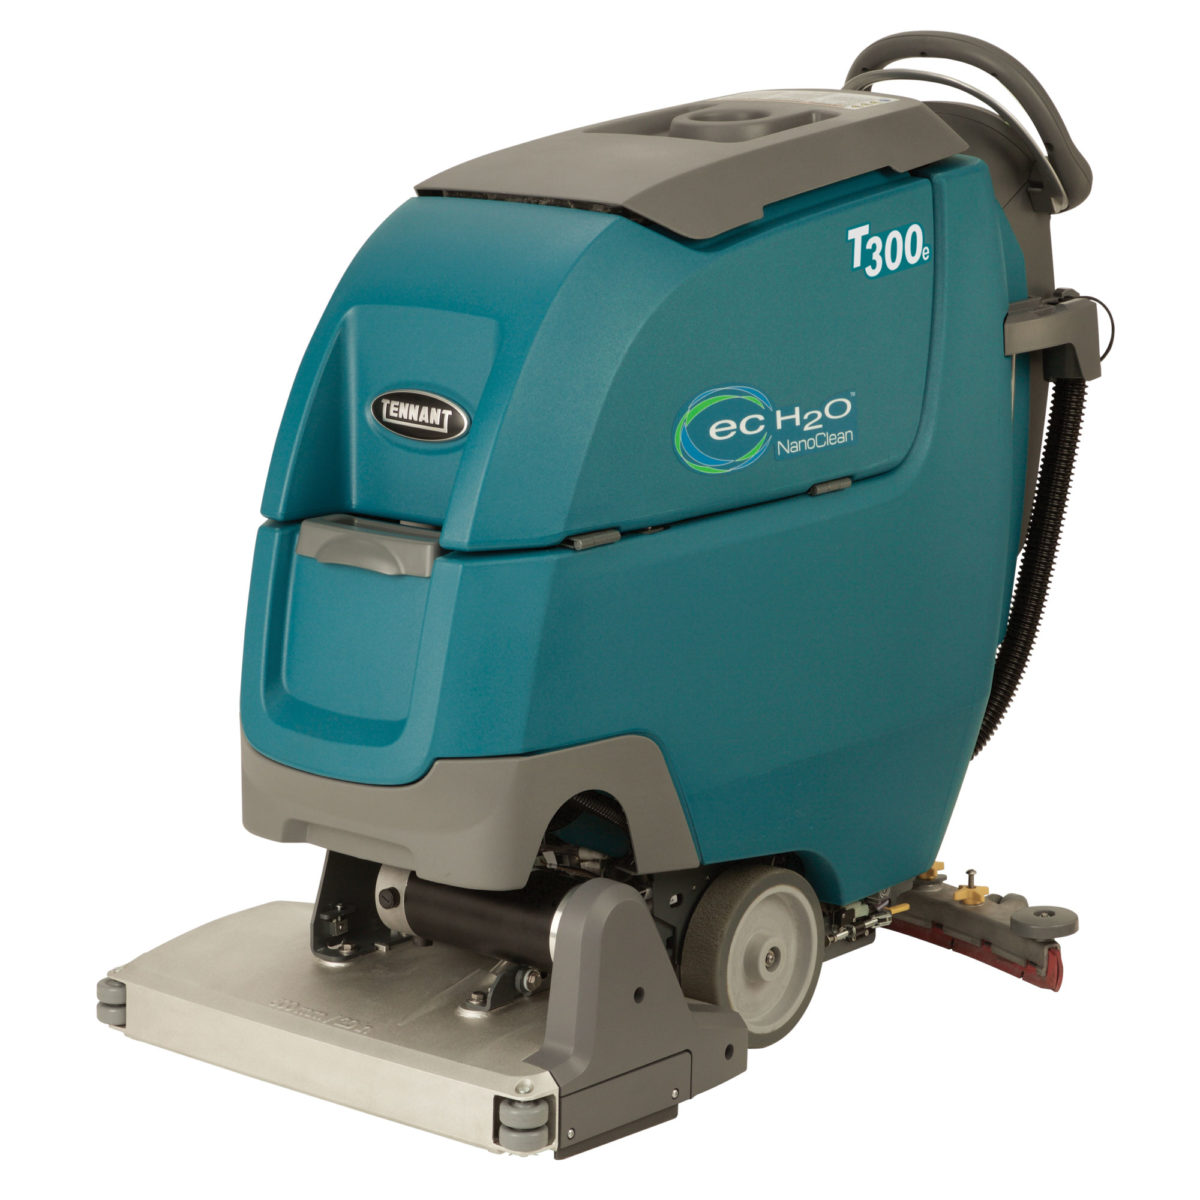 Tennant T300e Cylindrical Autoscrubber - Brushes